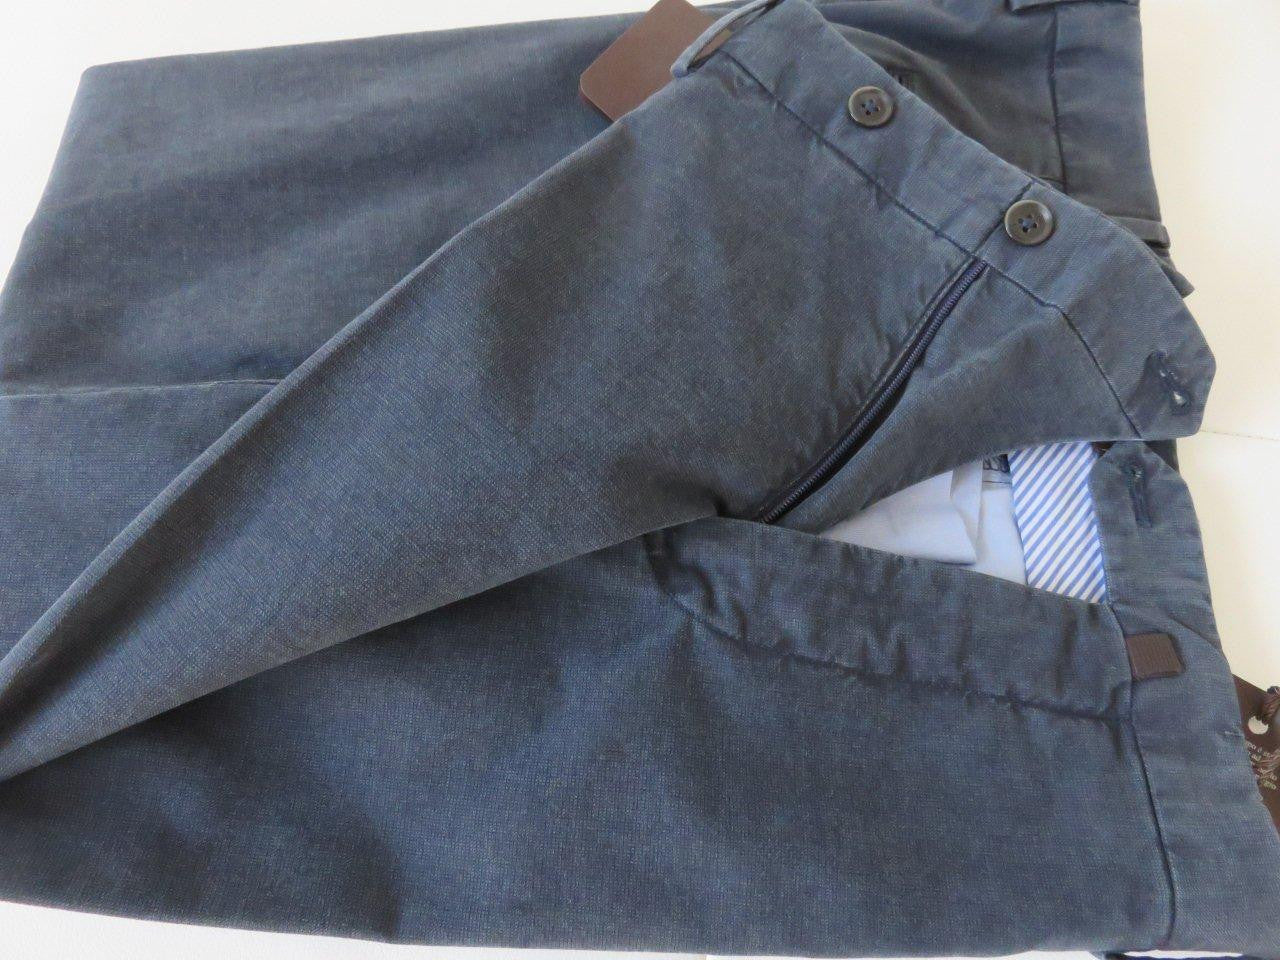 PT01 Pantaloni Torino - Business luxury cotton - Blue